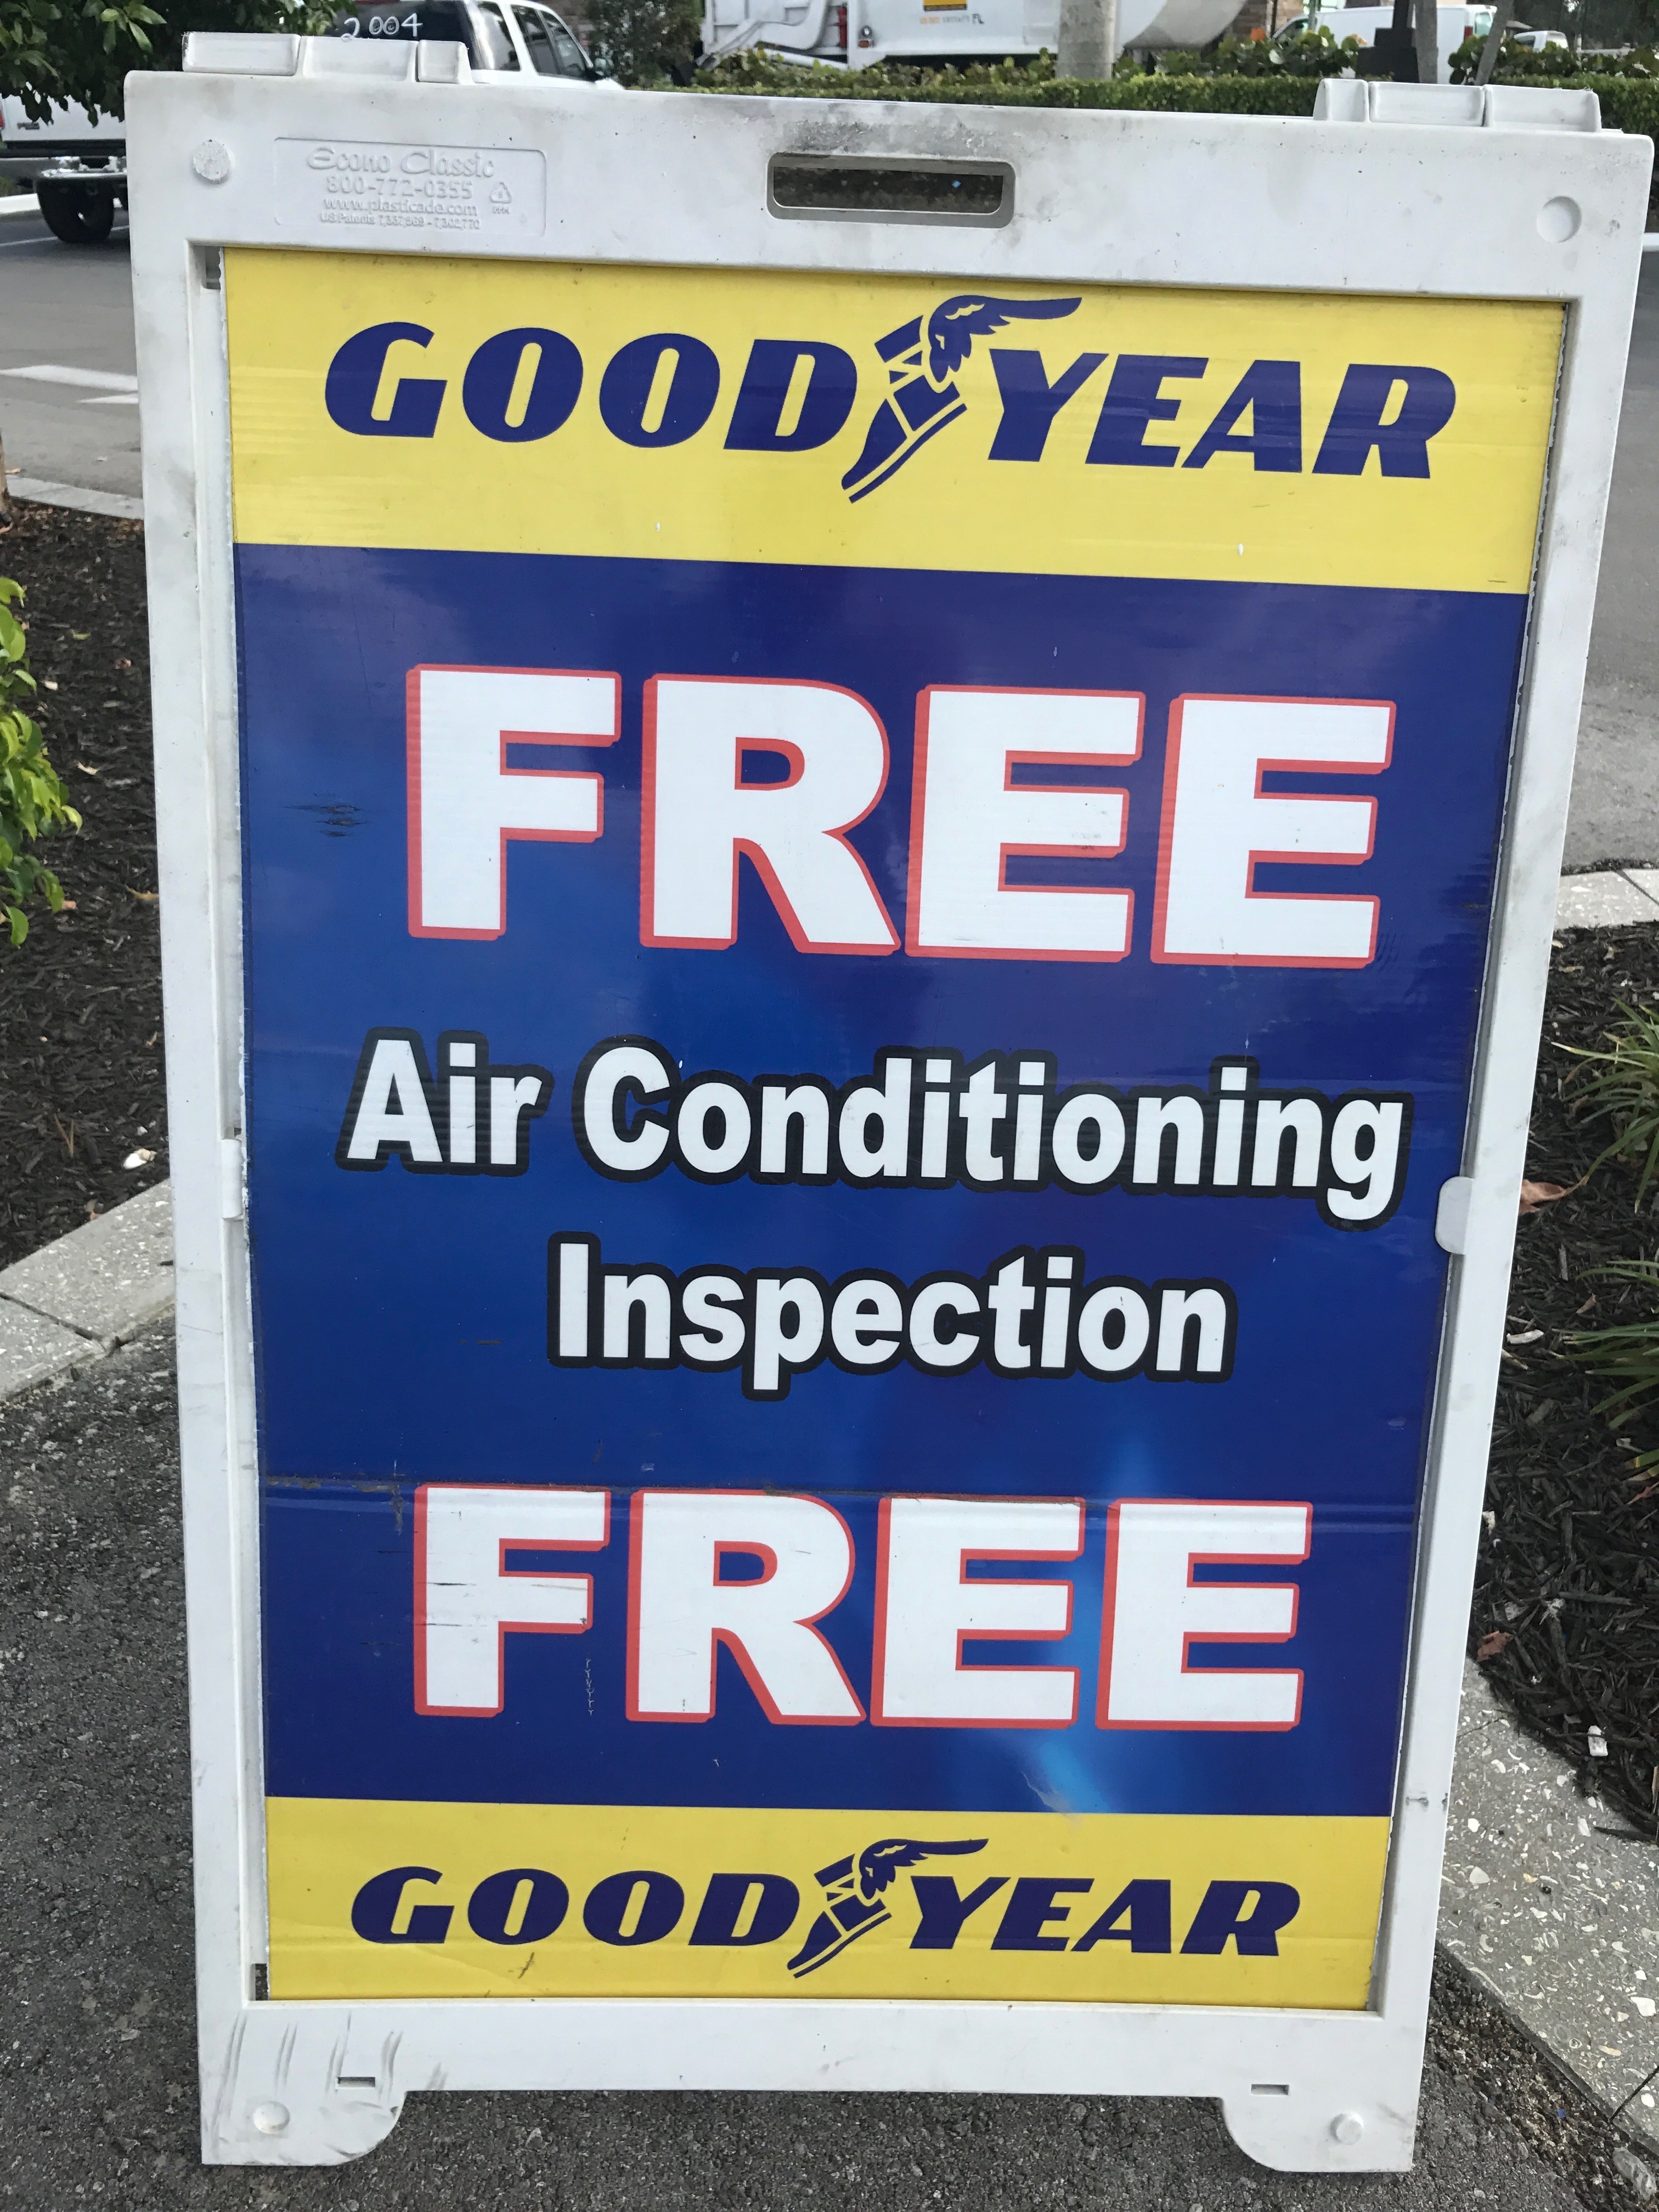 Collier Goodyear Car Care Center image 3